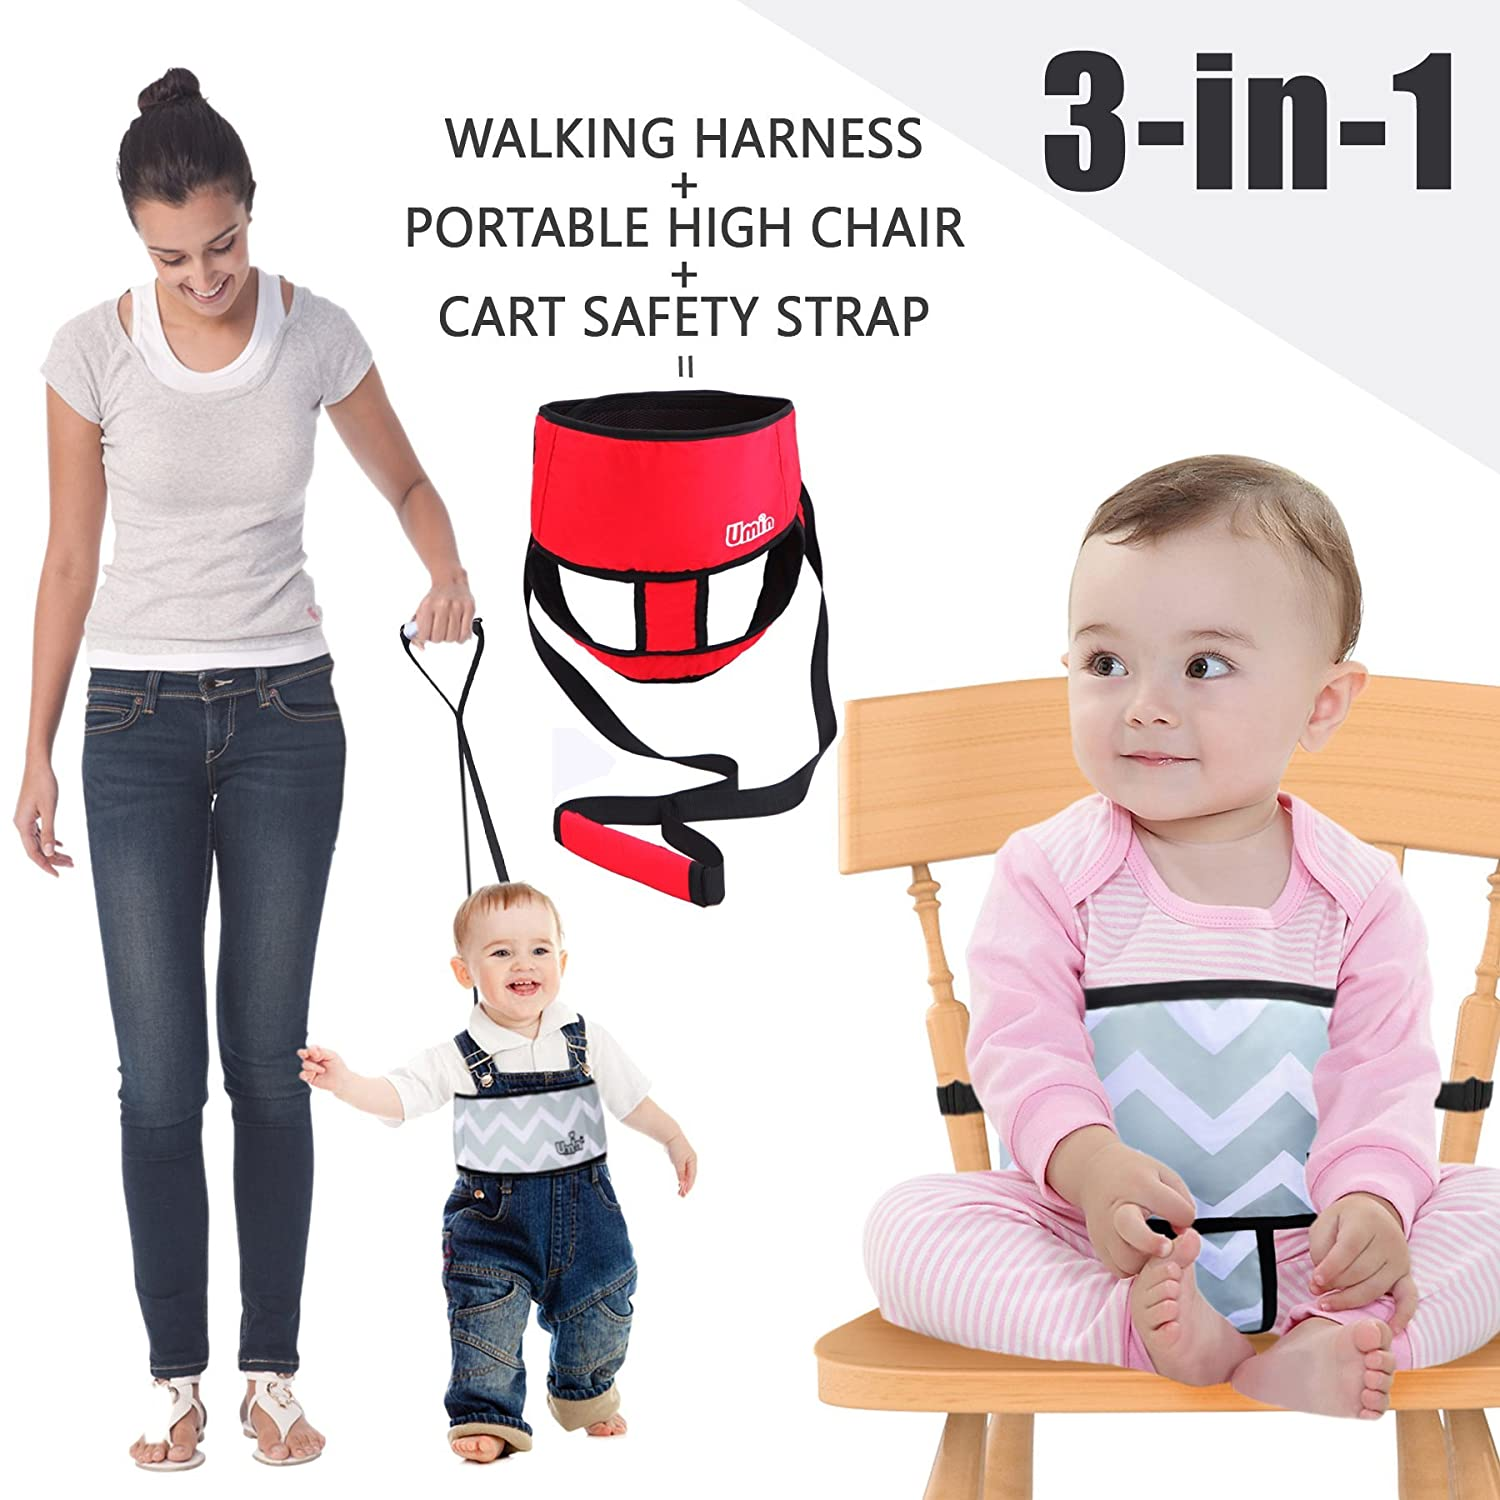 Umiin 3-in-1 Portable/Travel High Chair + Toddler Safety Walking Harness + Shopping Cart Safety Strap, Lightweight & Washable, Red